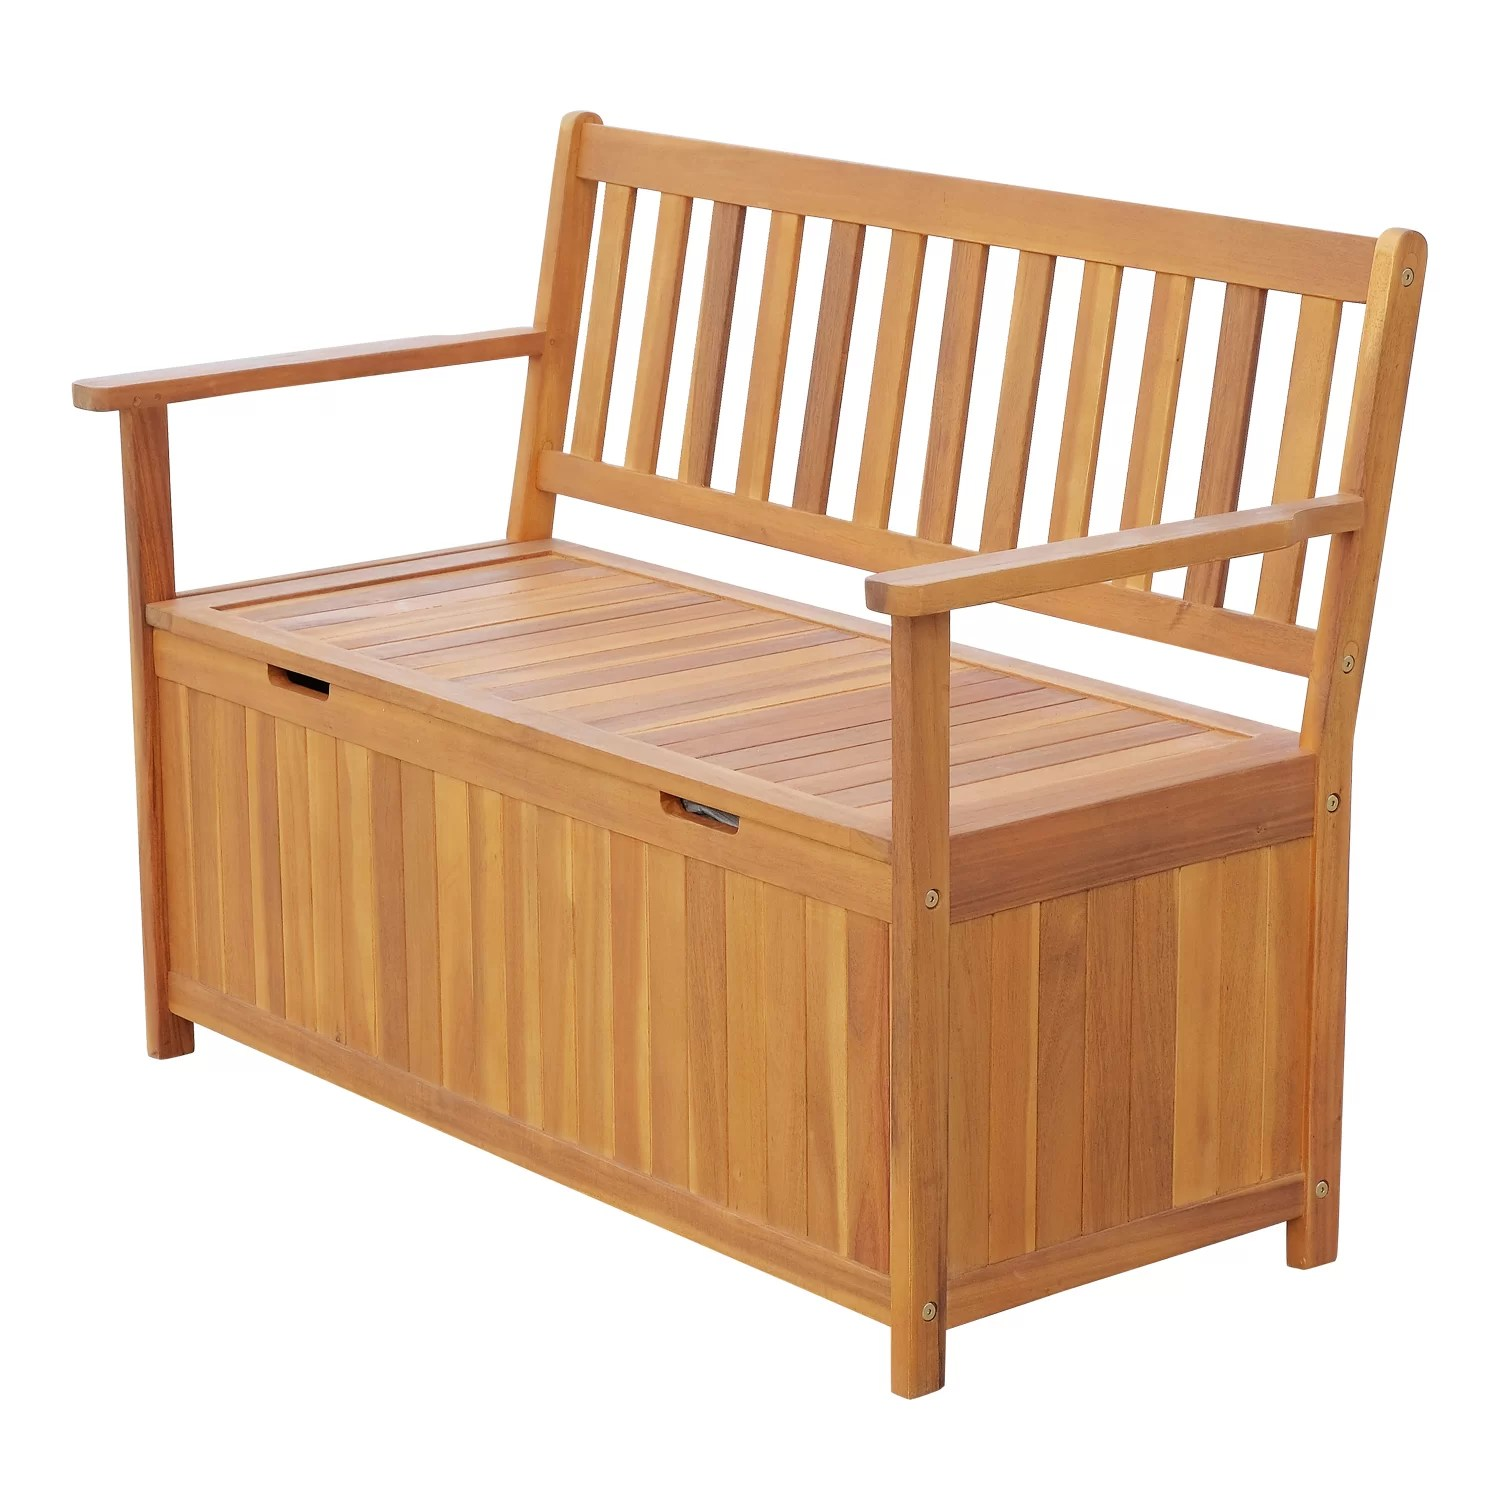 Wooden Storage Bench Silvia Outdoor Wooden Storage Bench